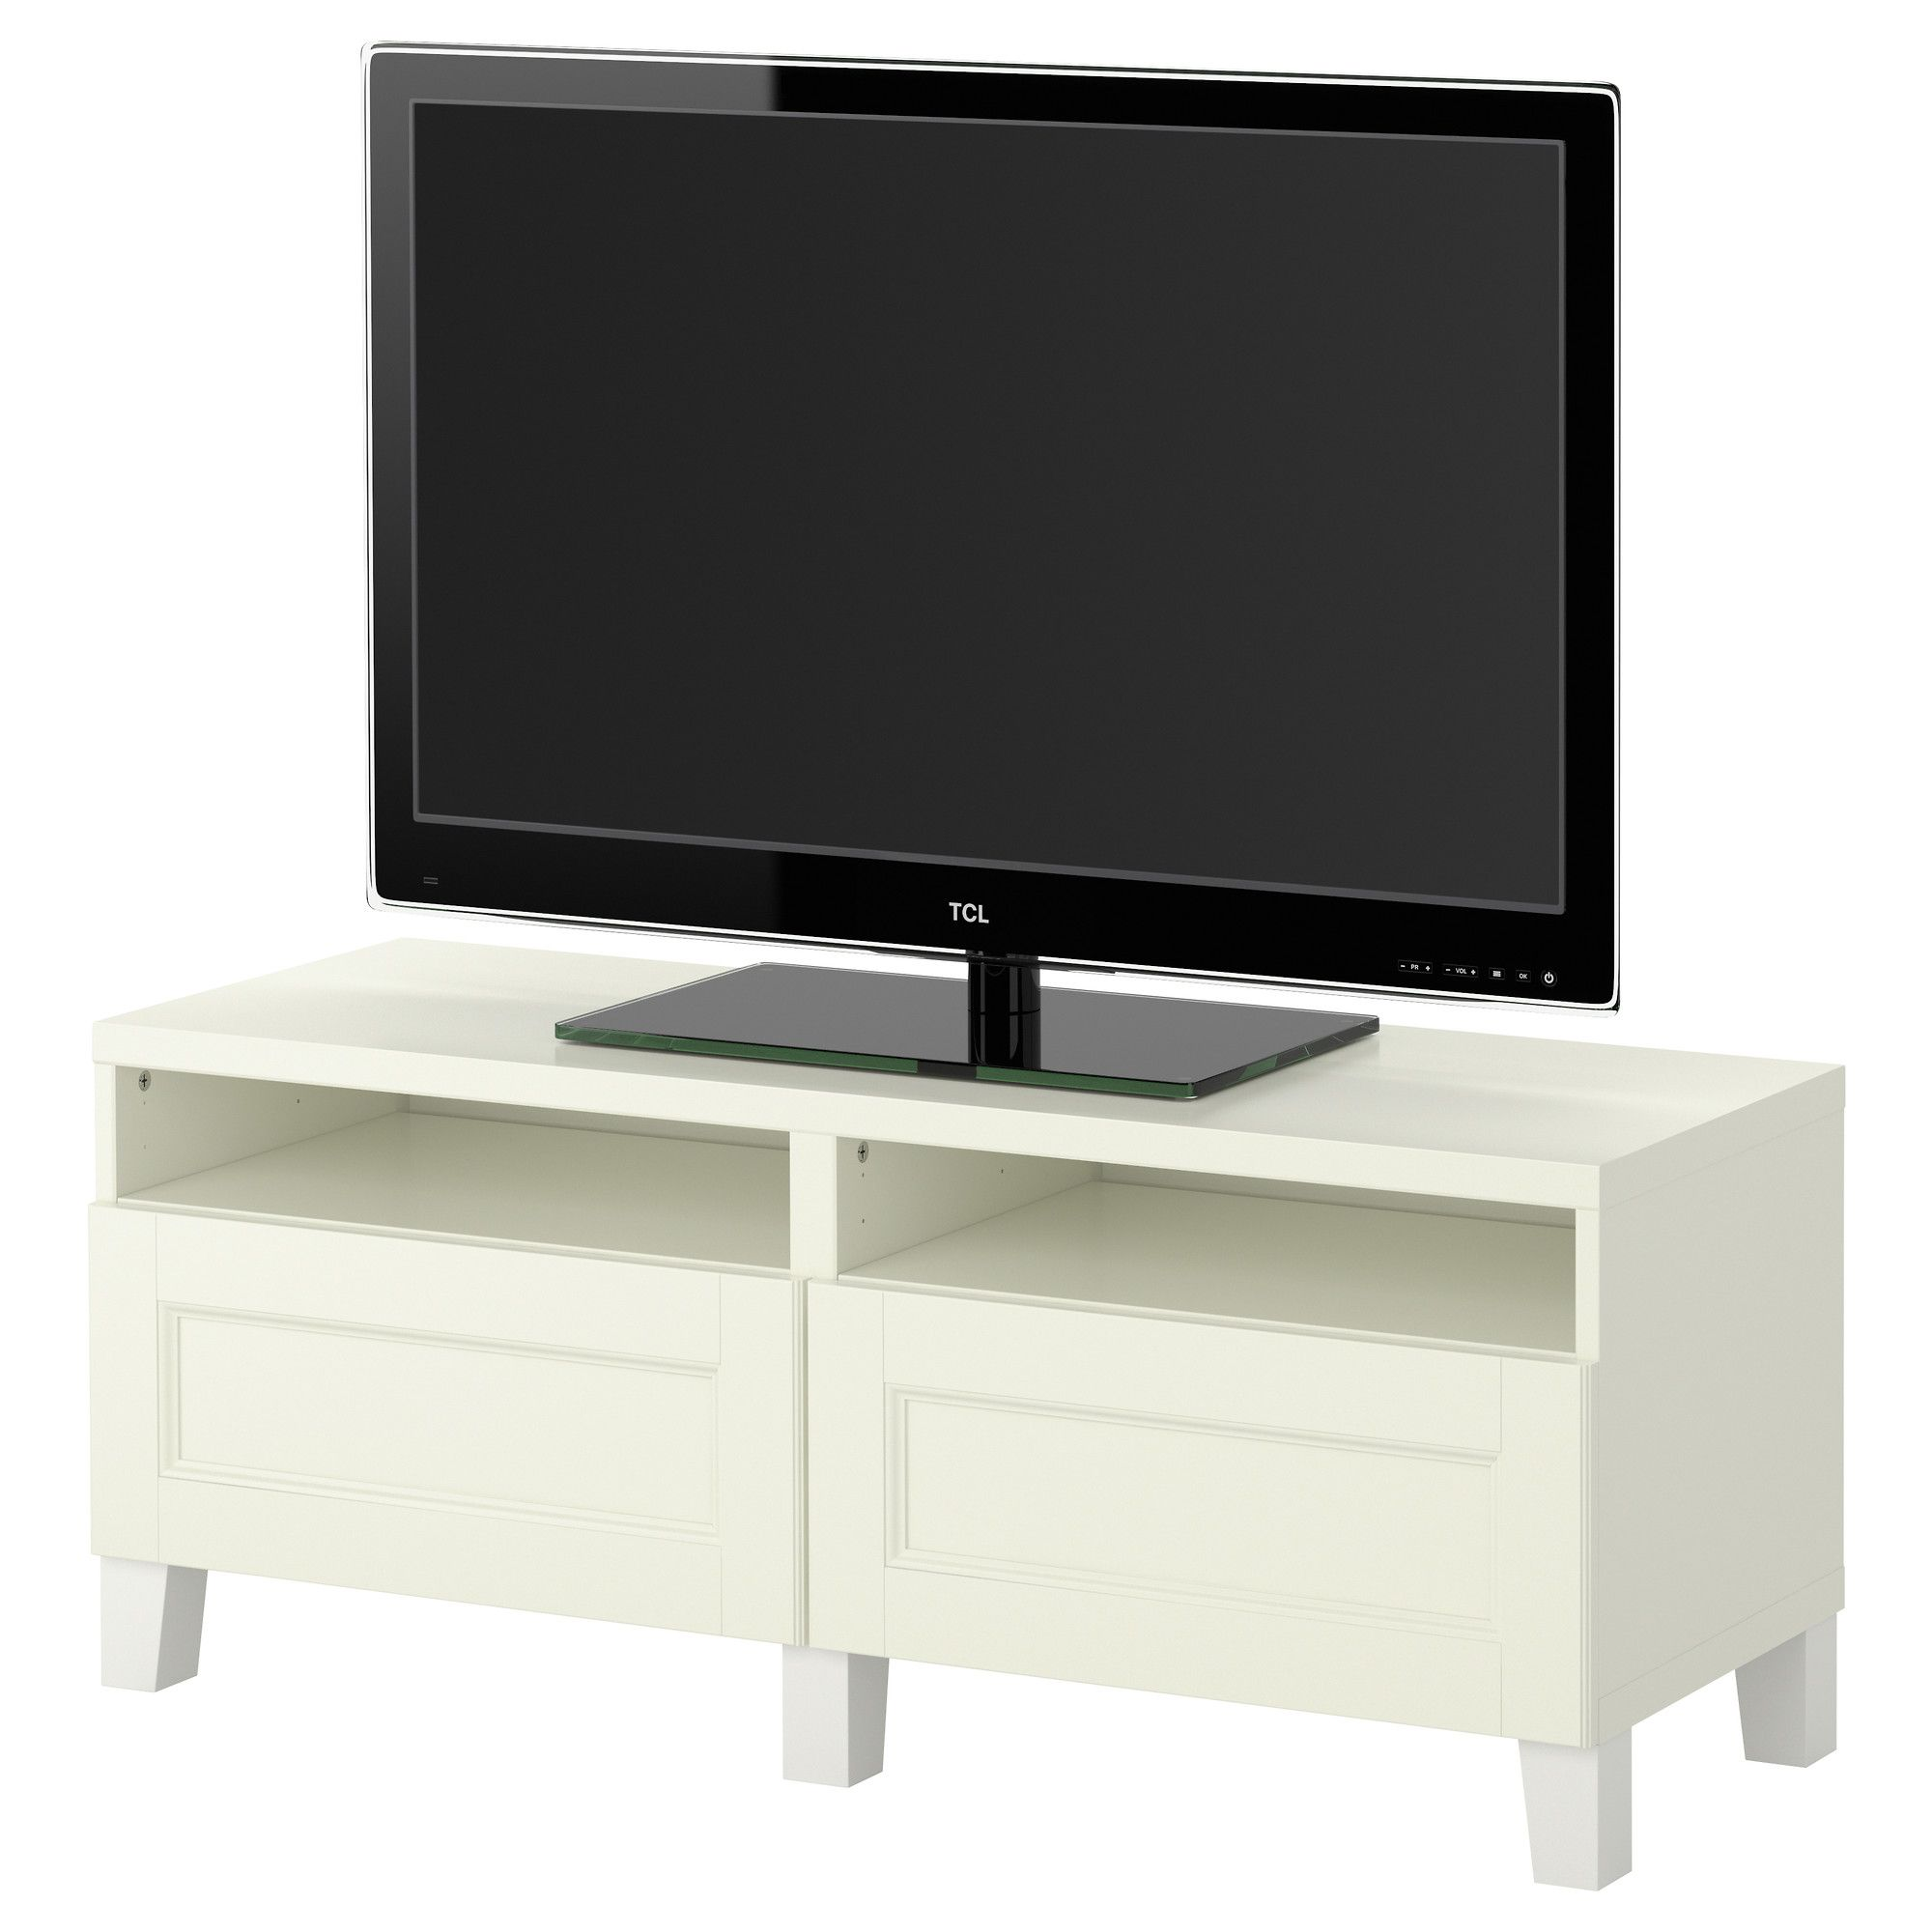 Mueble Cajones Ikea BestÅ Tv Bench With Drawers Ikea Décor Pinterest